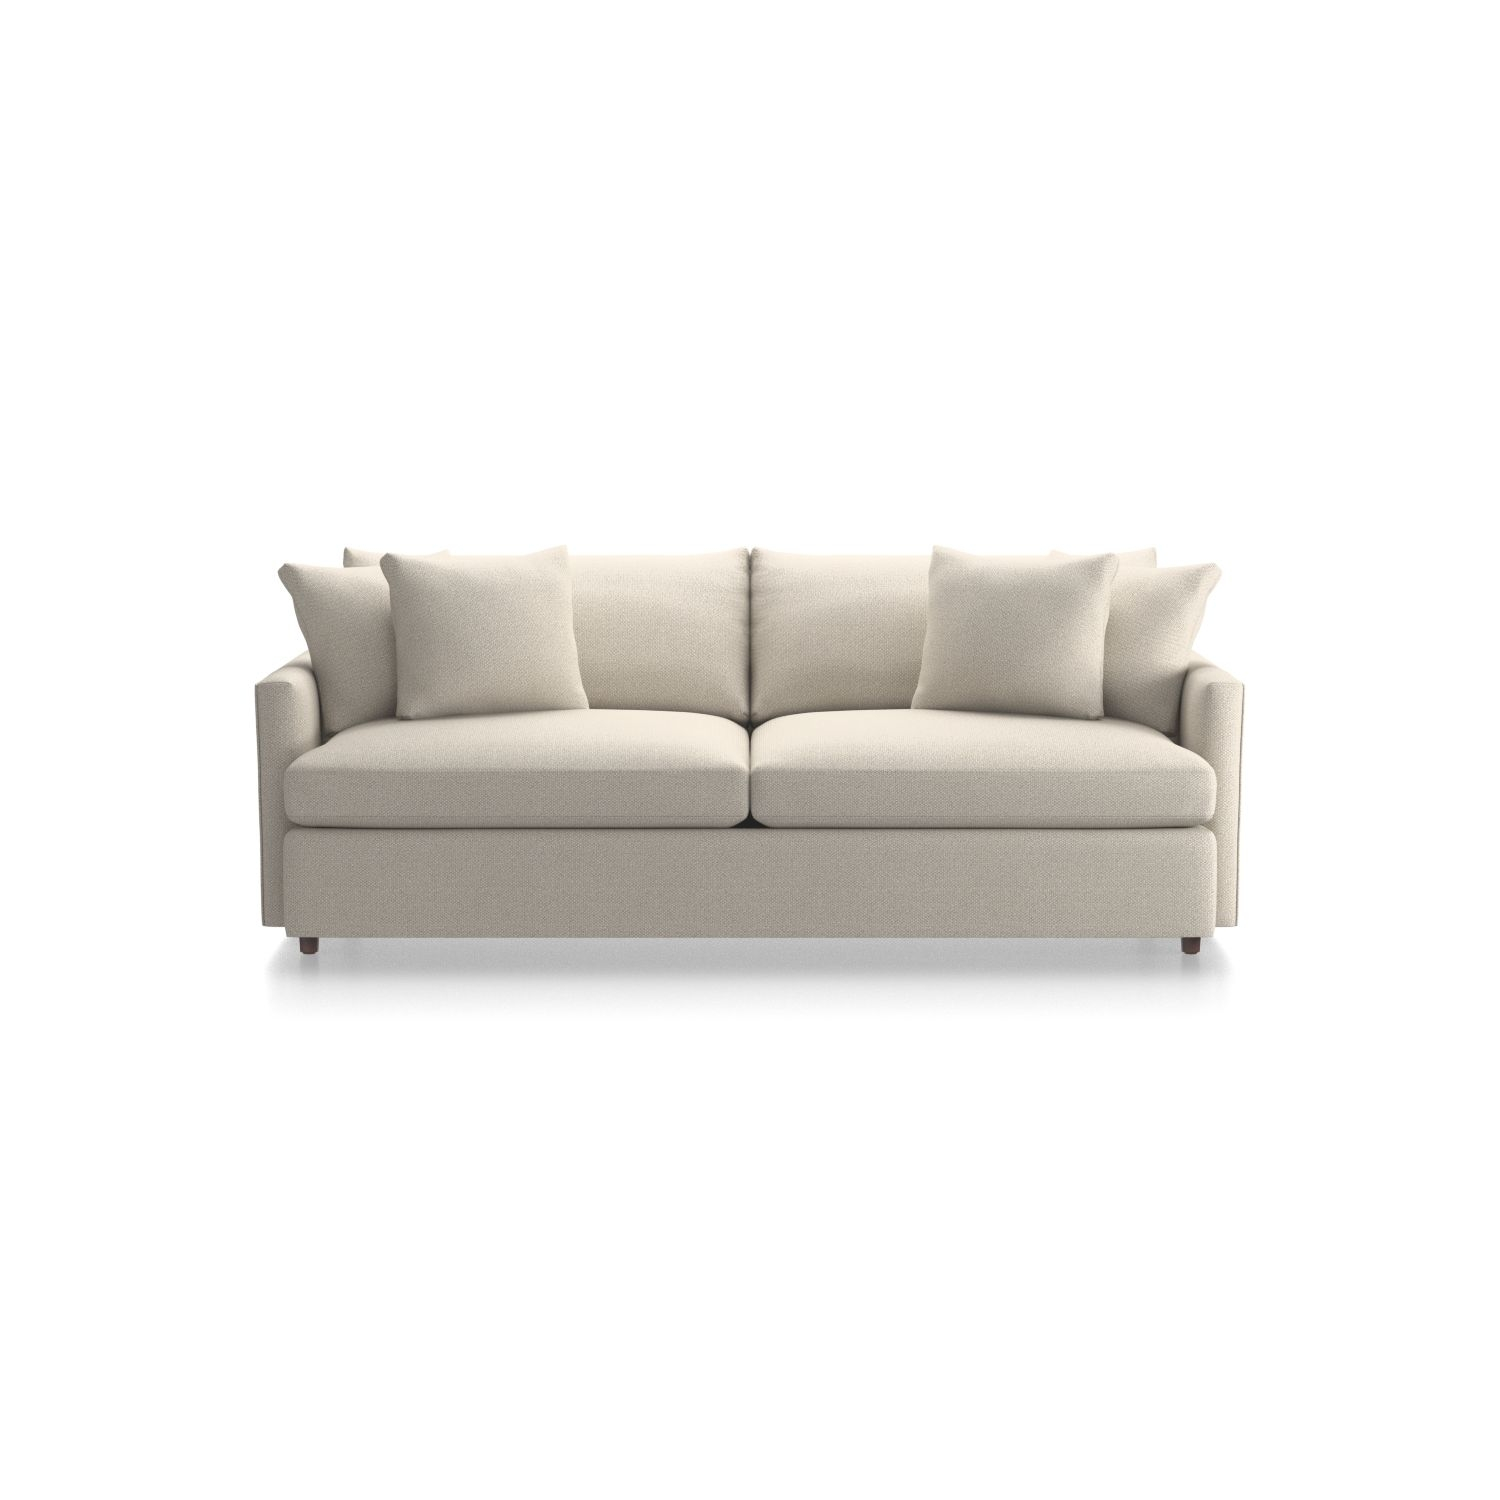 """Lounge Ii 93"""" Sofa + Reviews 